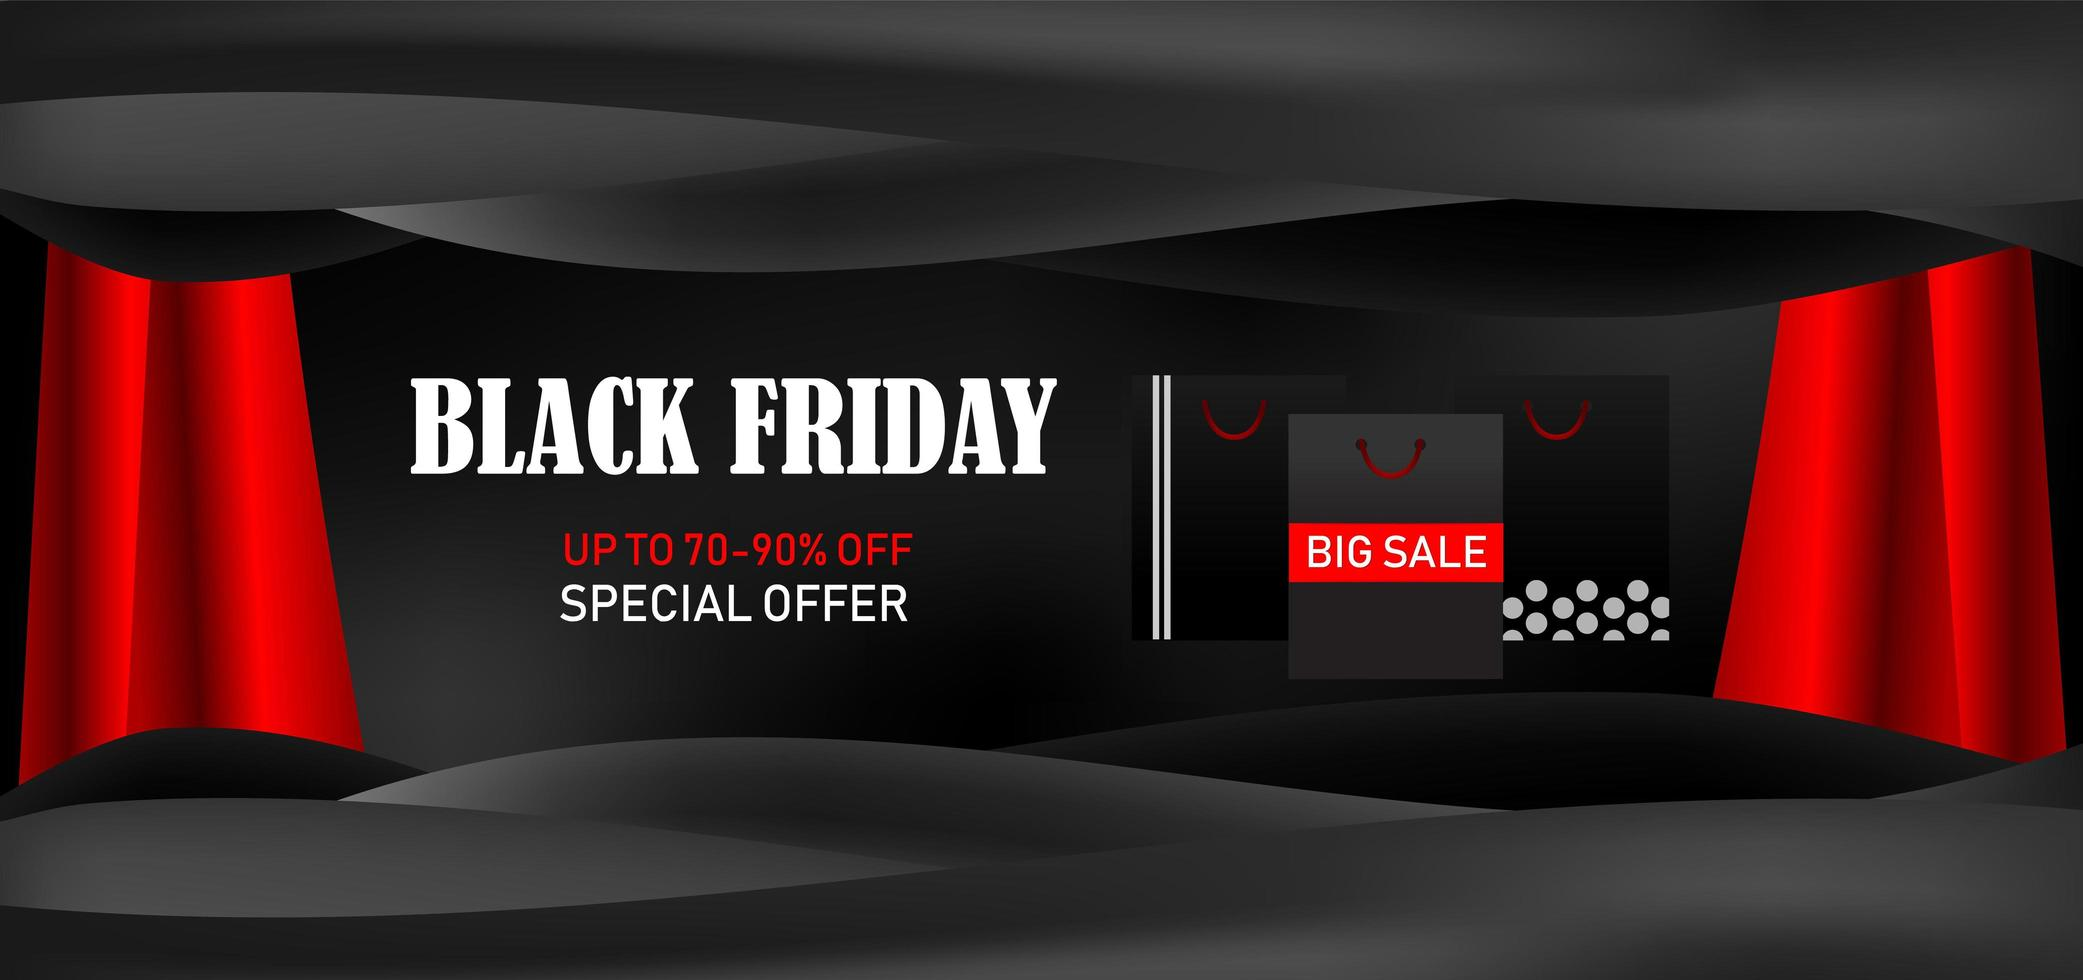 Black Friday Big Sale Promotion Sonderangebot Banner vektor